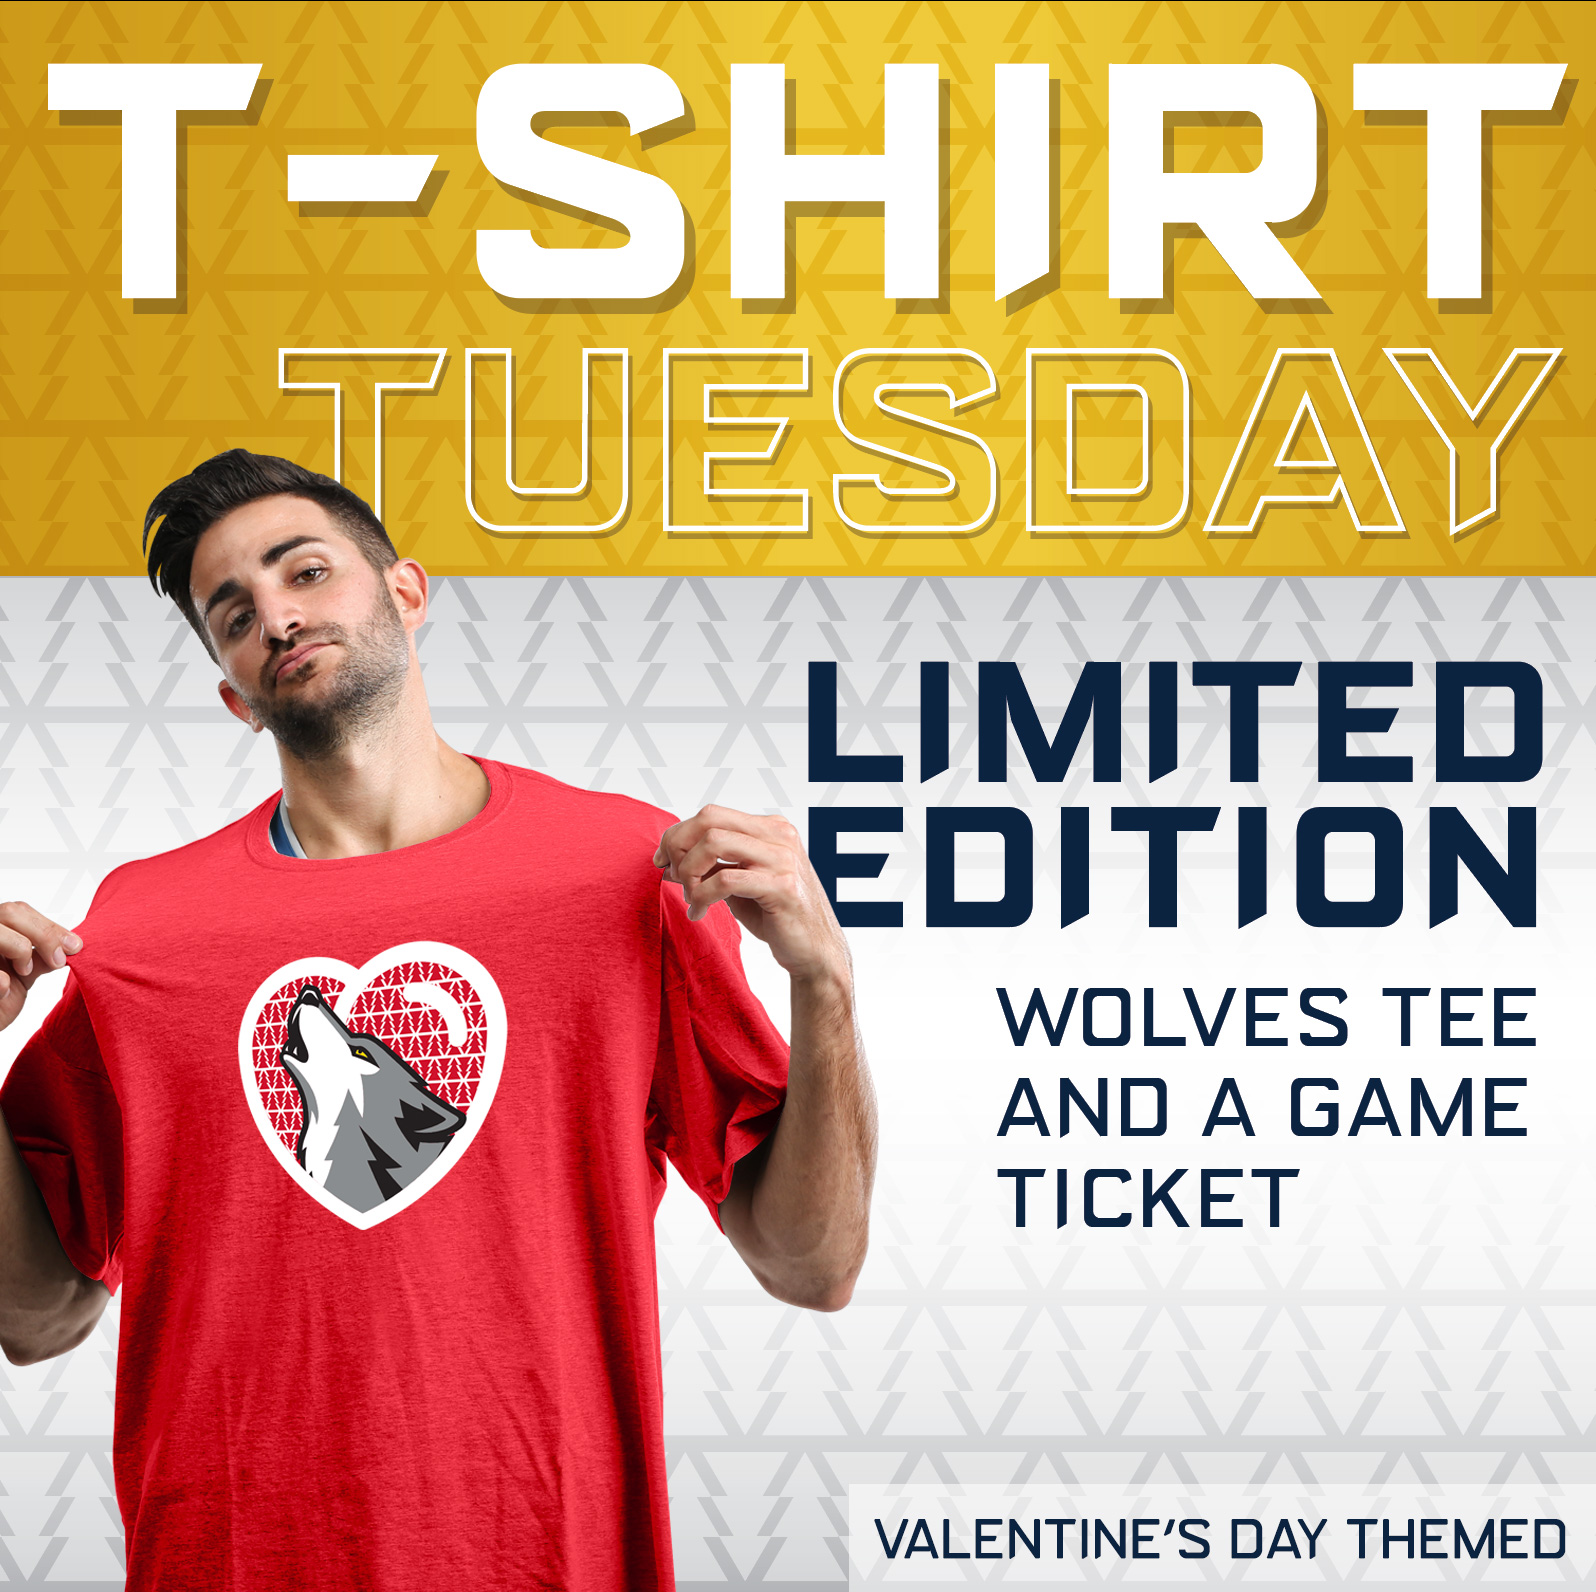 Wolves T-Shirt Tuesday